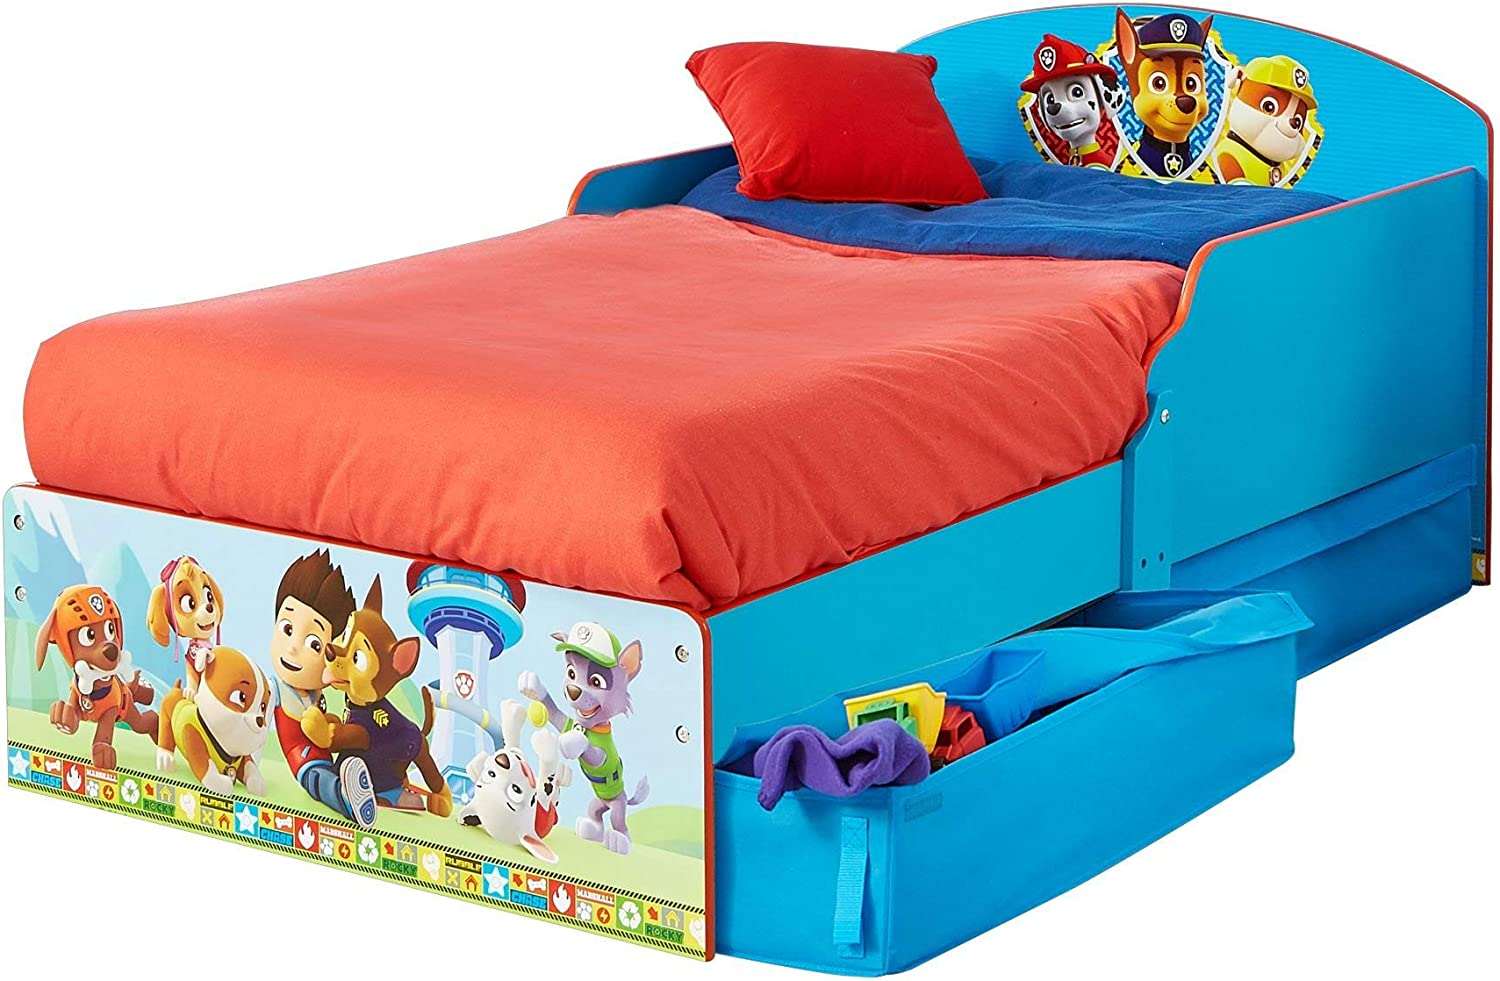 Paw Patrol Toddler Bed With Storage Space Wooden Amazon De Home Kitchen